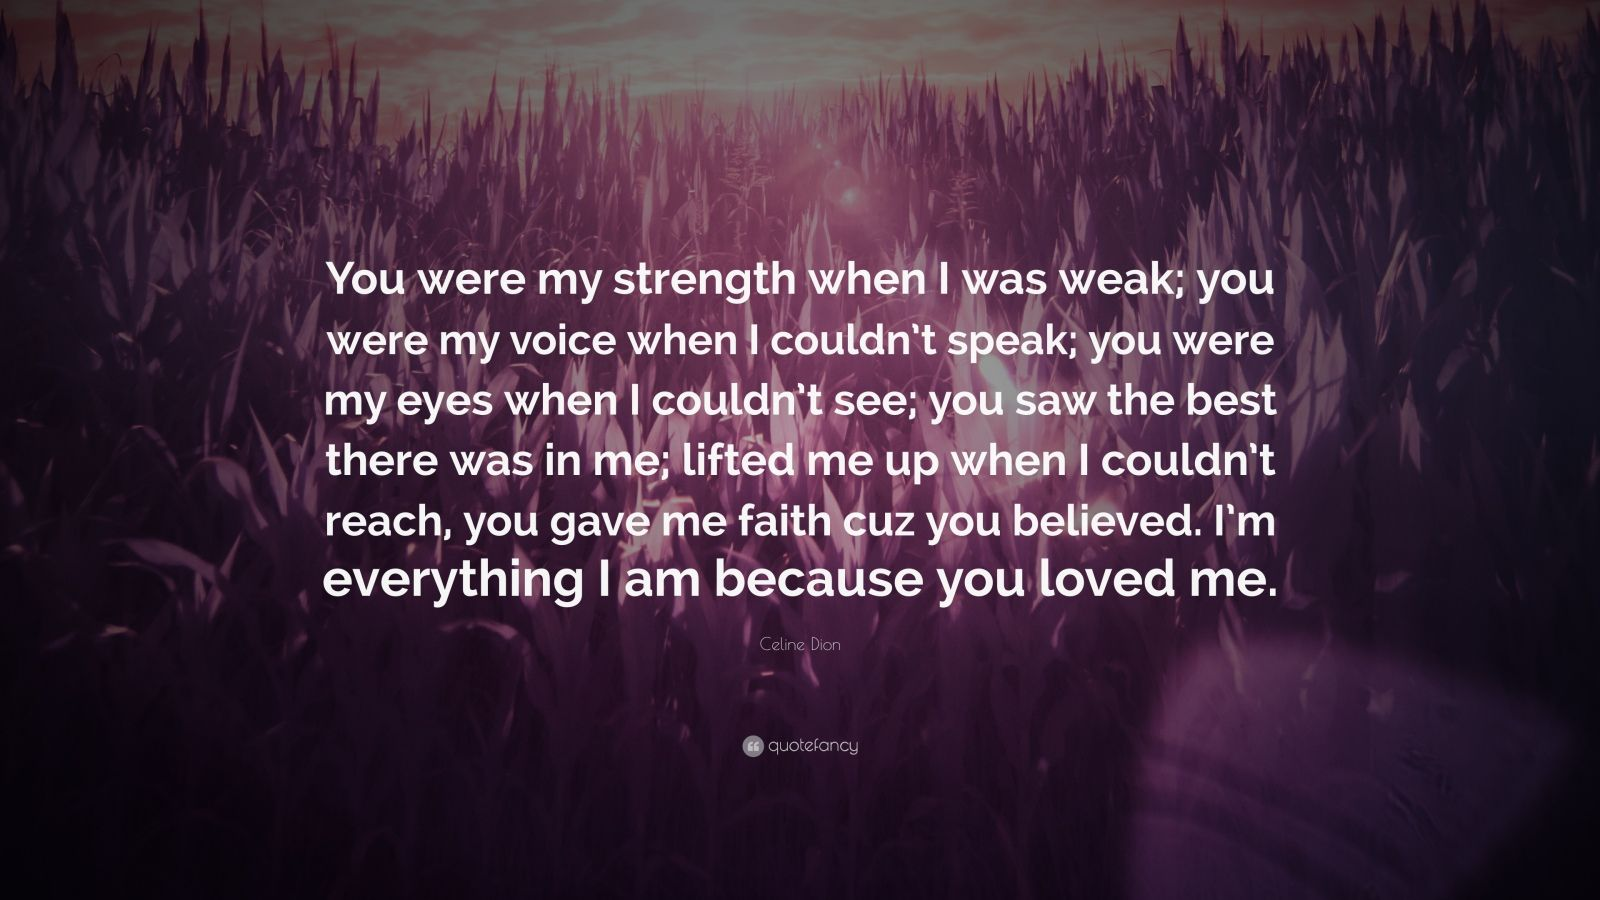 Because You Loved Me Quotes: Celine Dion Quotes (73 Wallpapers)